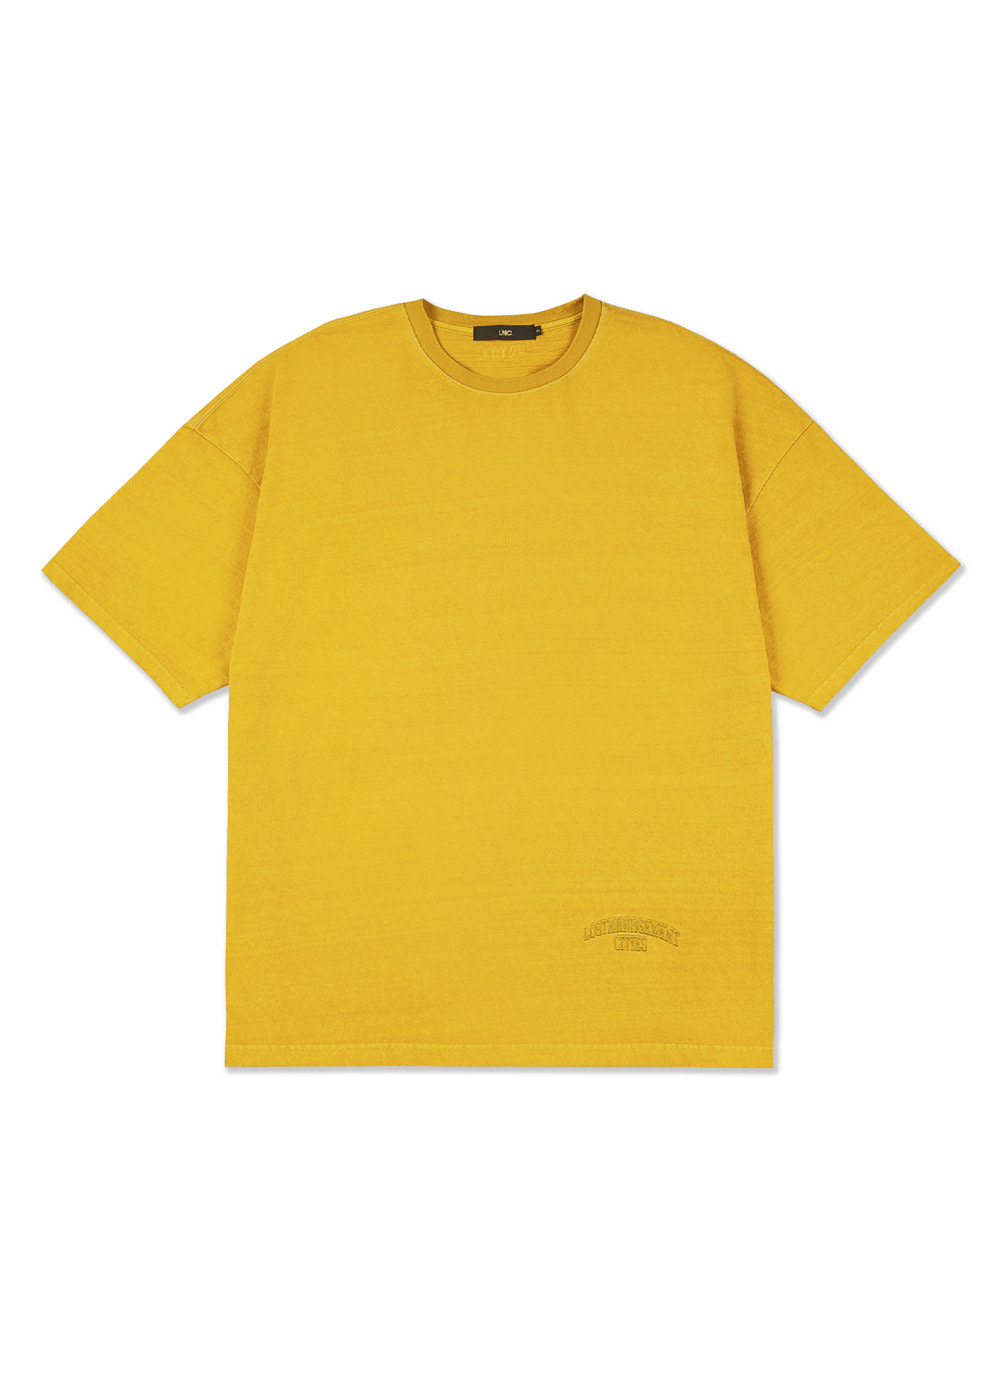 LMC OVERDYED ARCH FN OVERSIZED TEE yellow